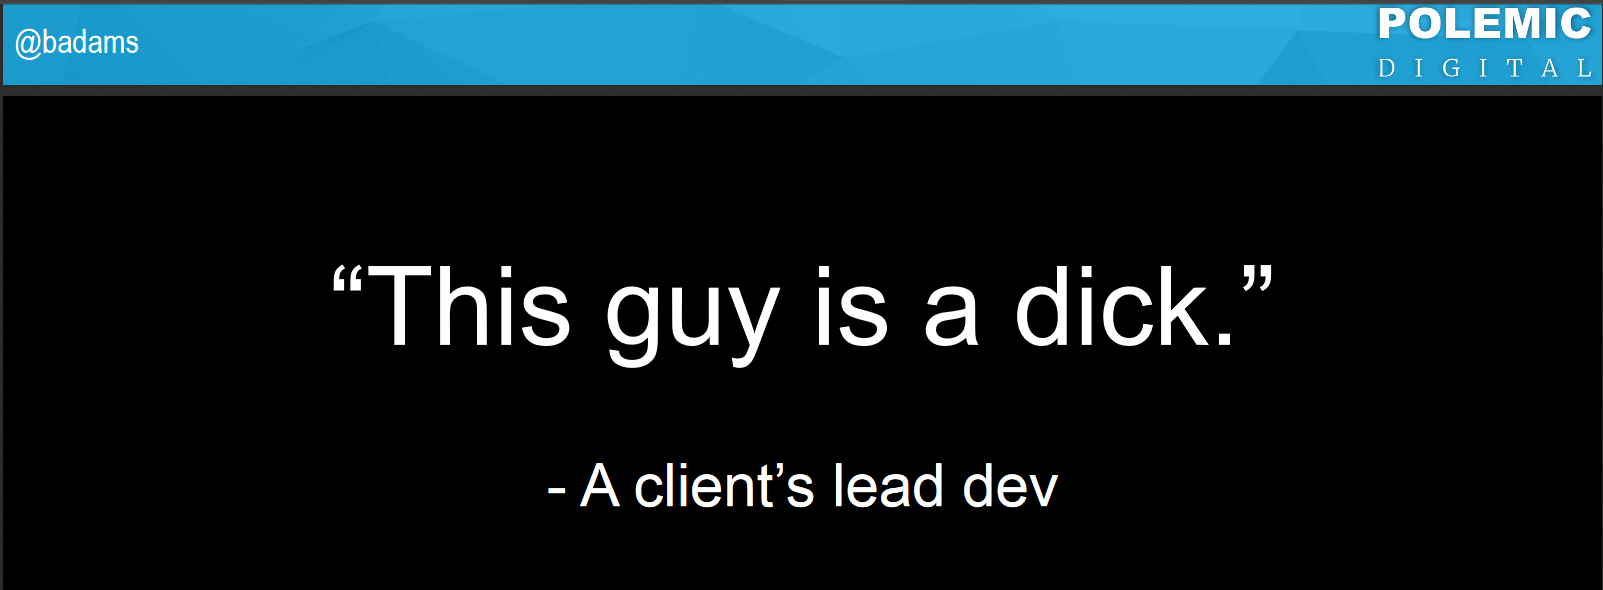 Barry Adams Polemic SEO - this guy is a dick web design and SEO